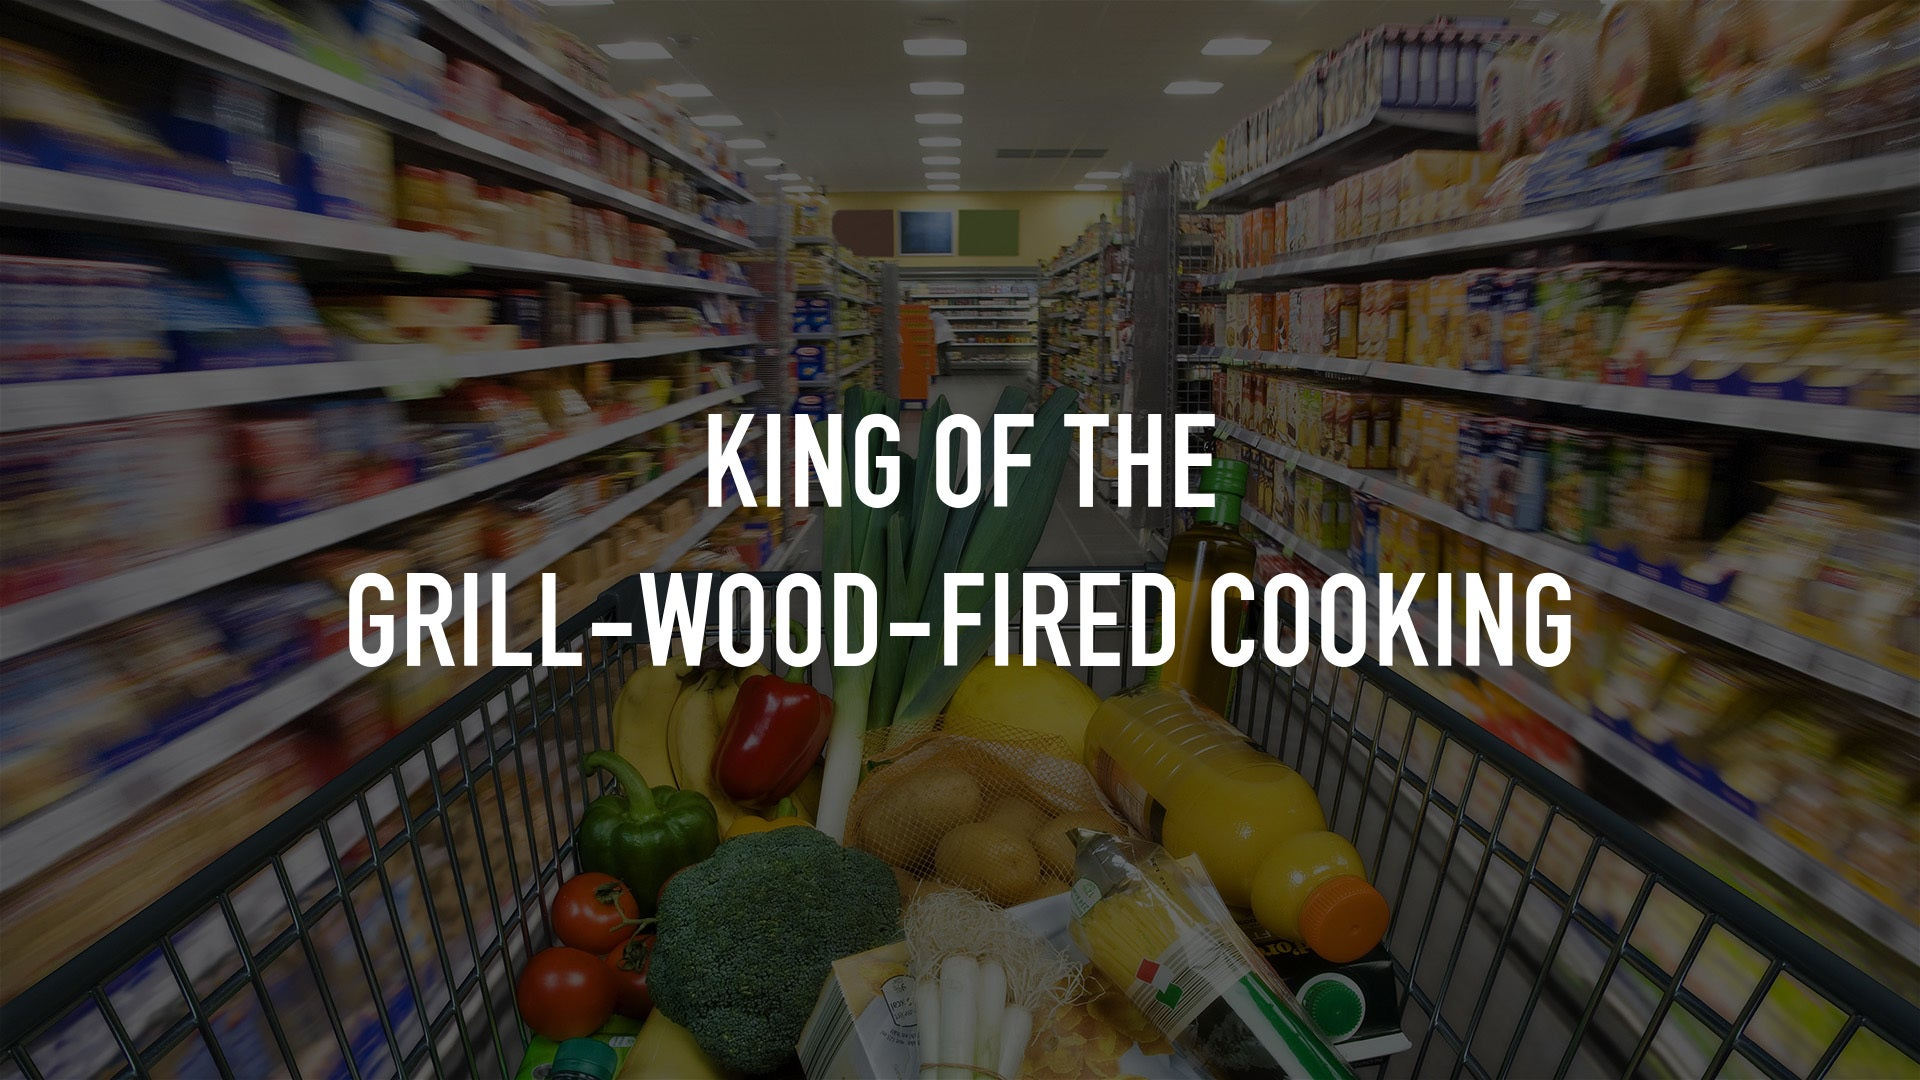 King of the Grill-Wood-Fired Cooking